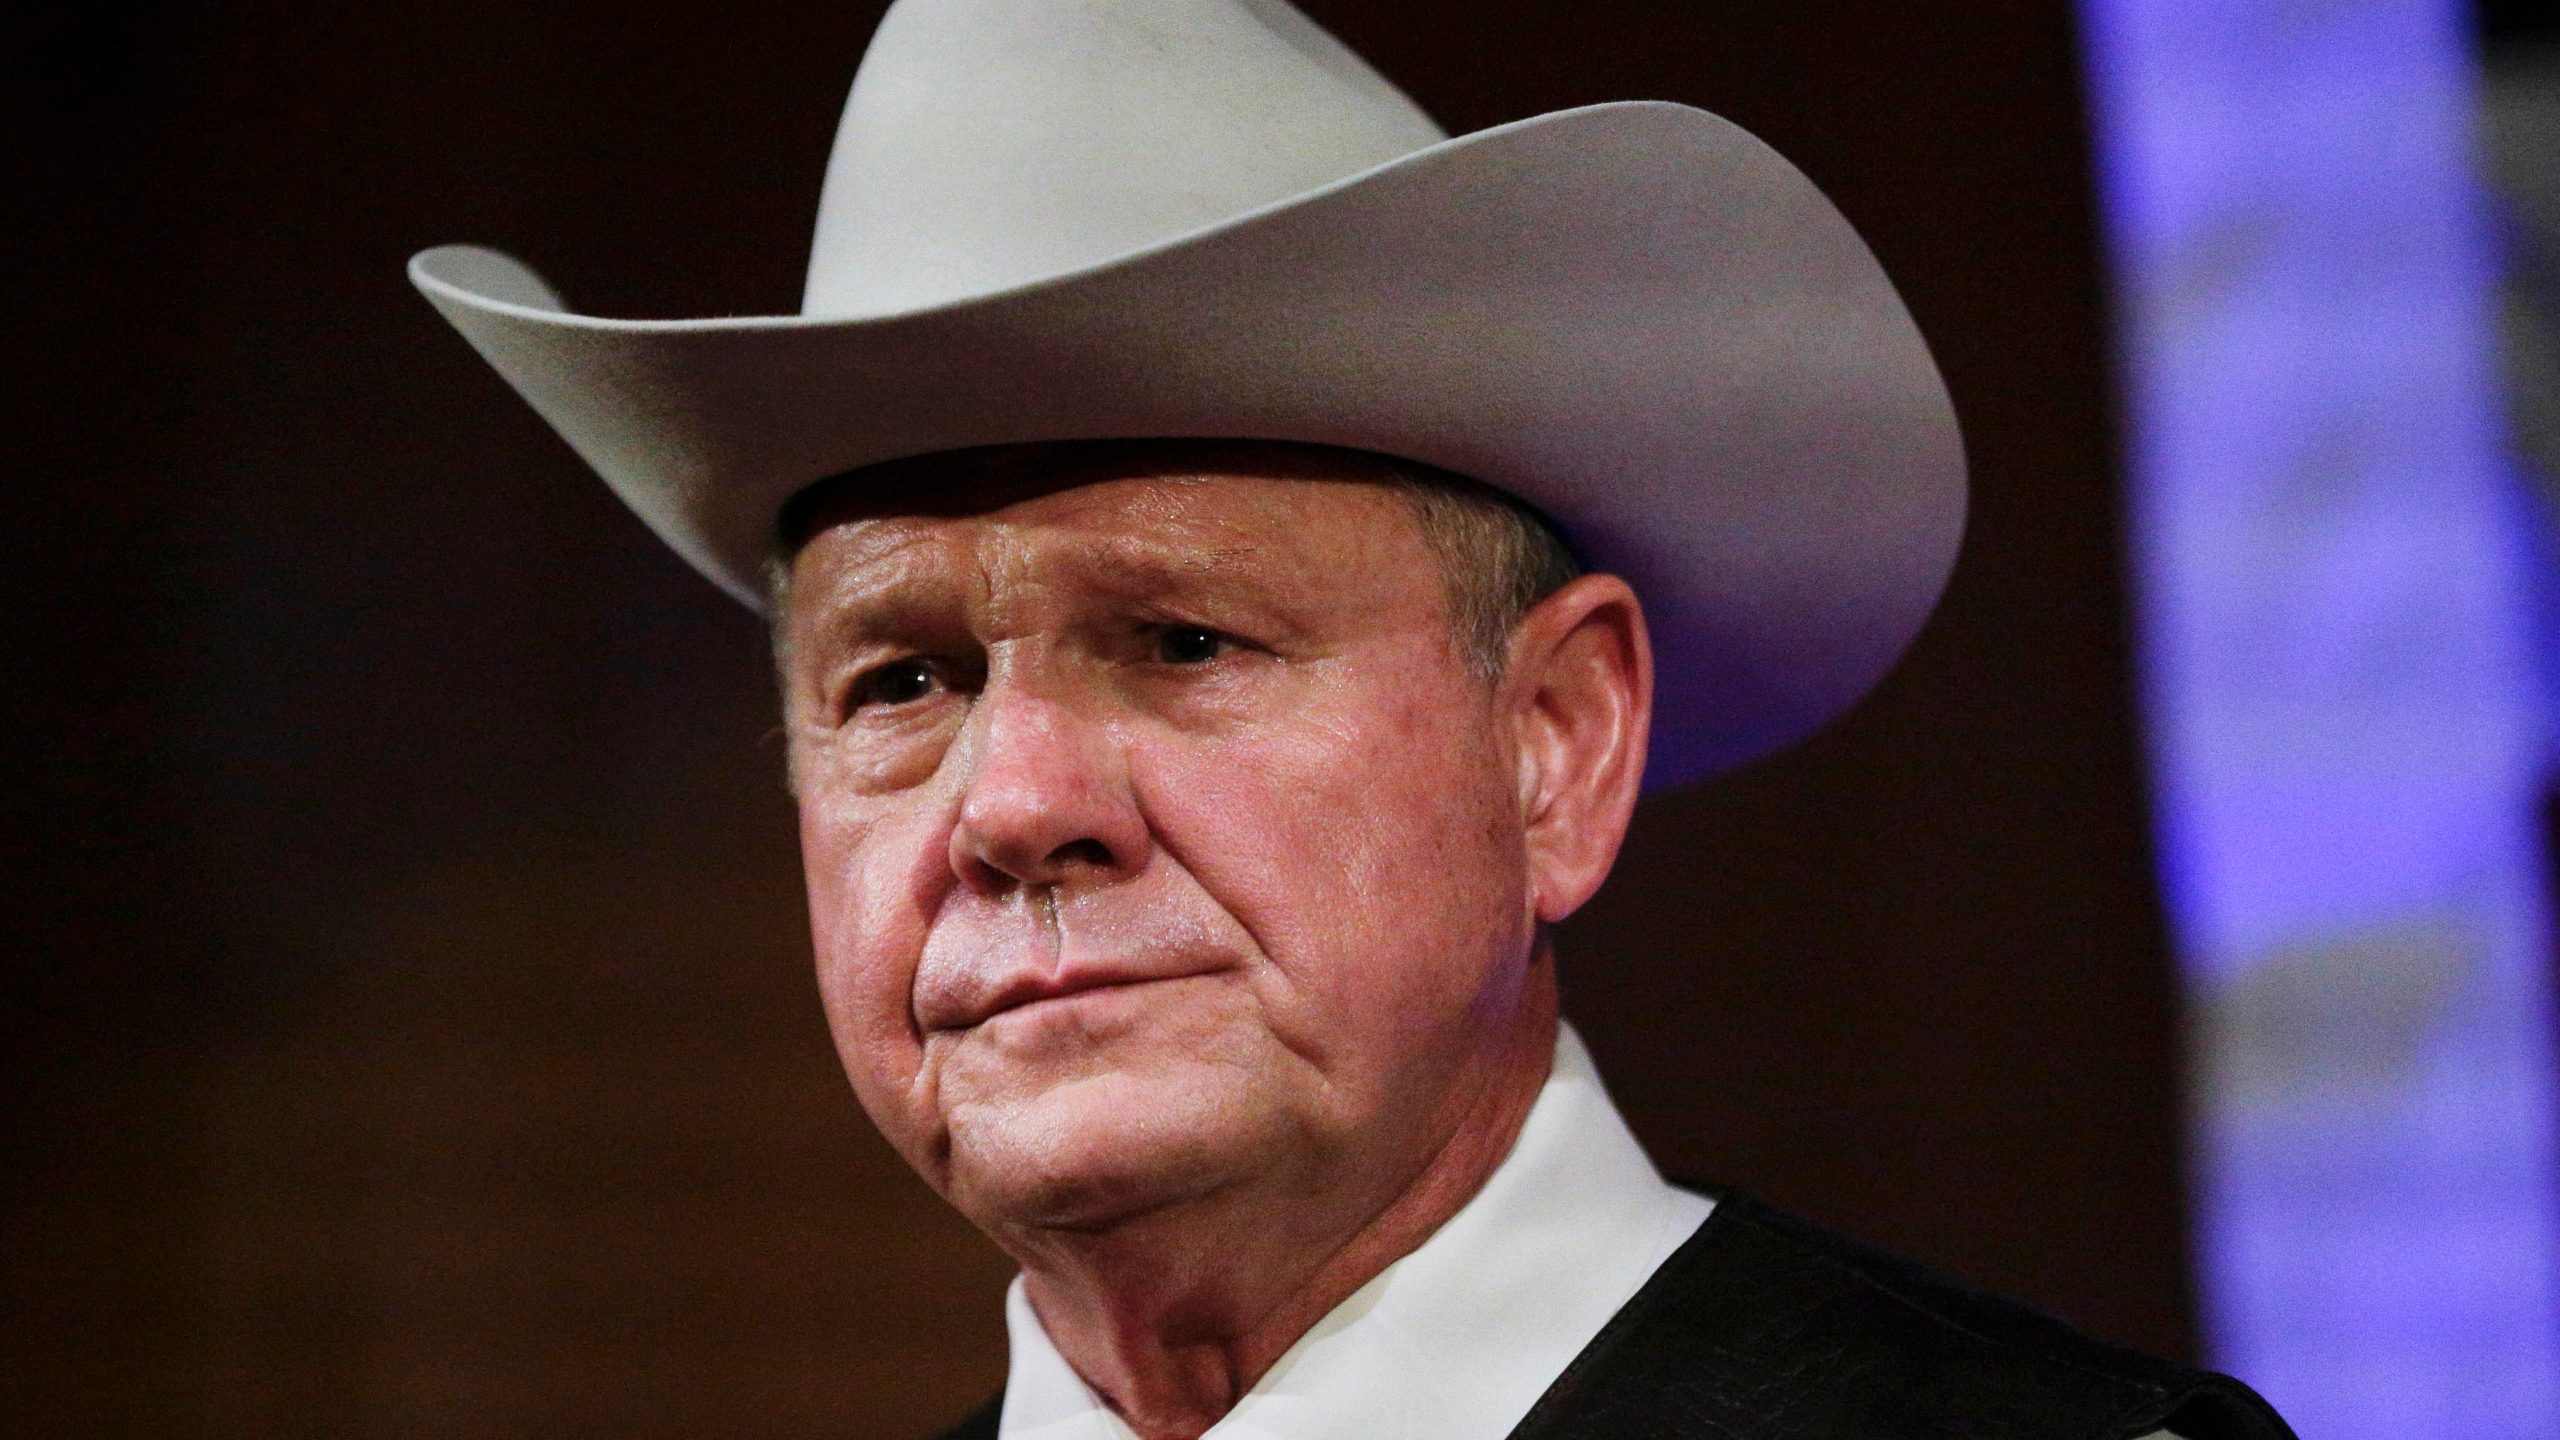 Roy_Moore_Money_15091-159532.jpg54522244